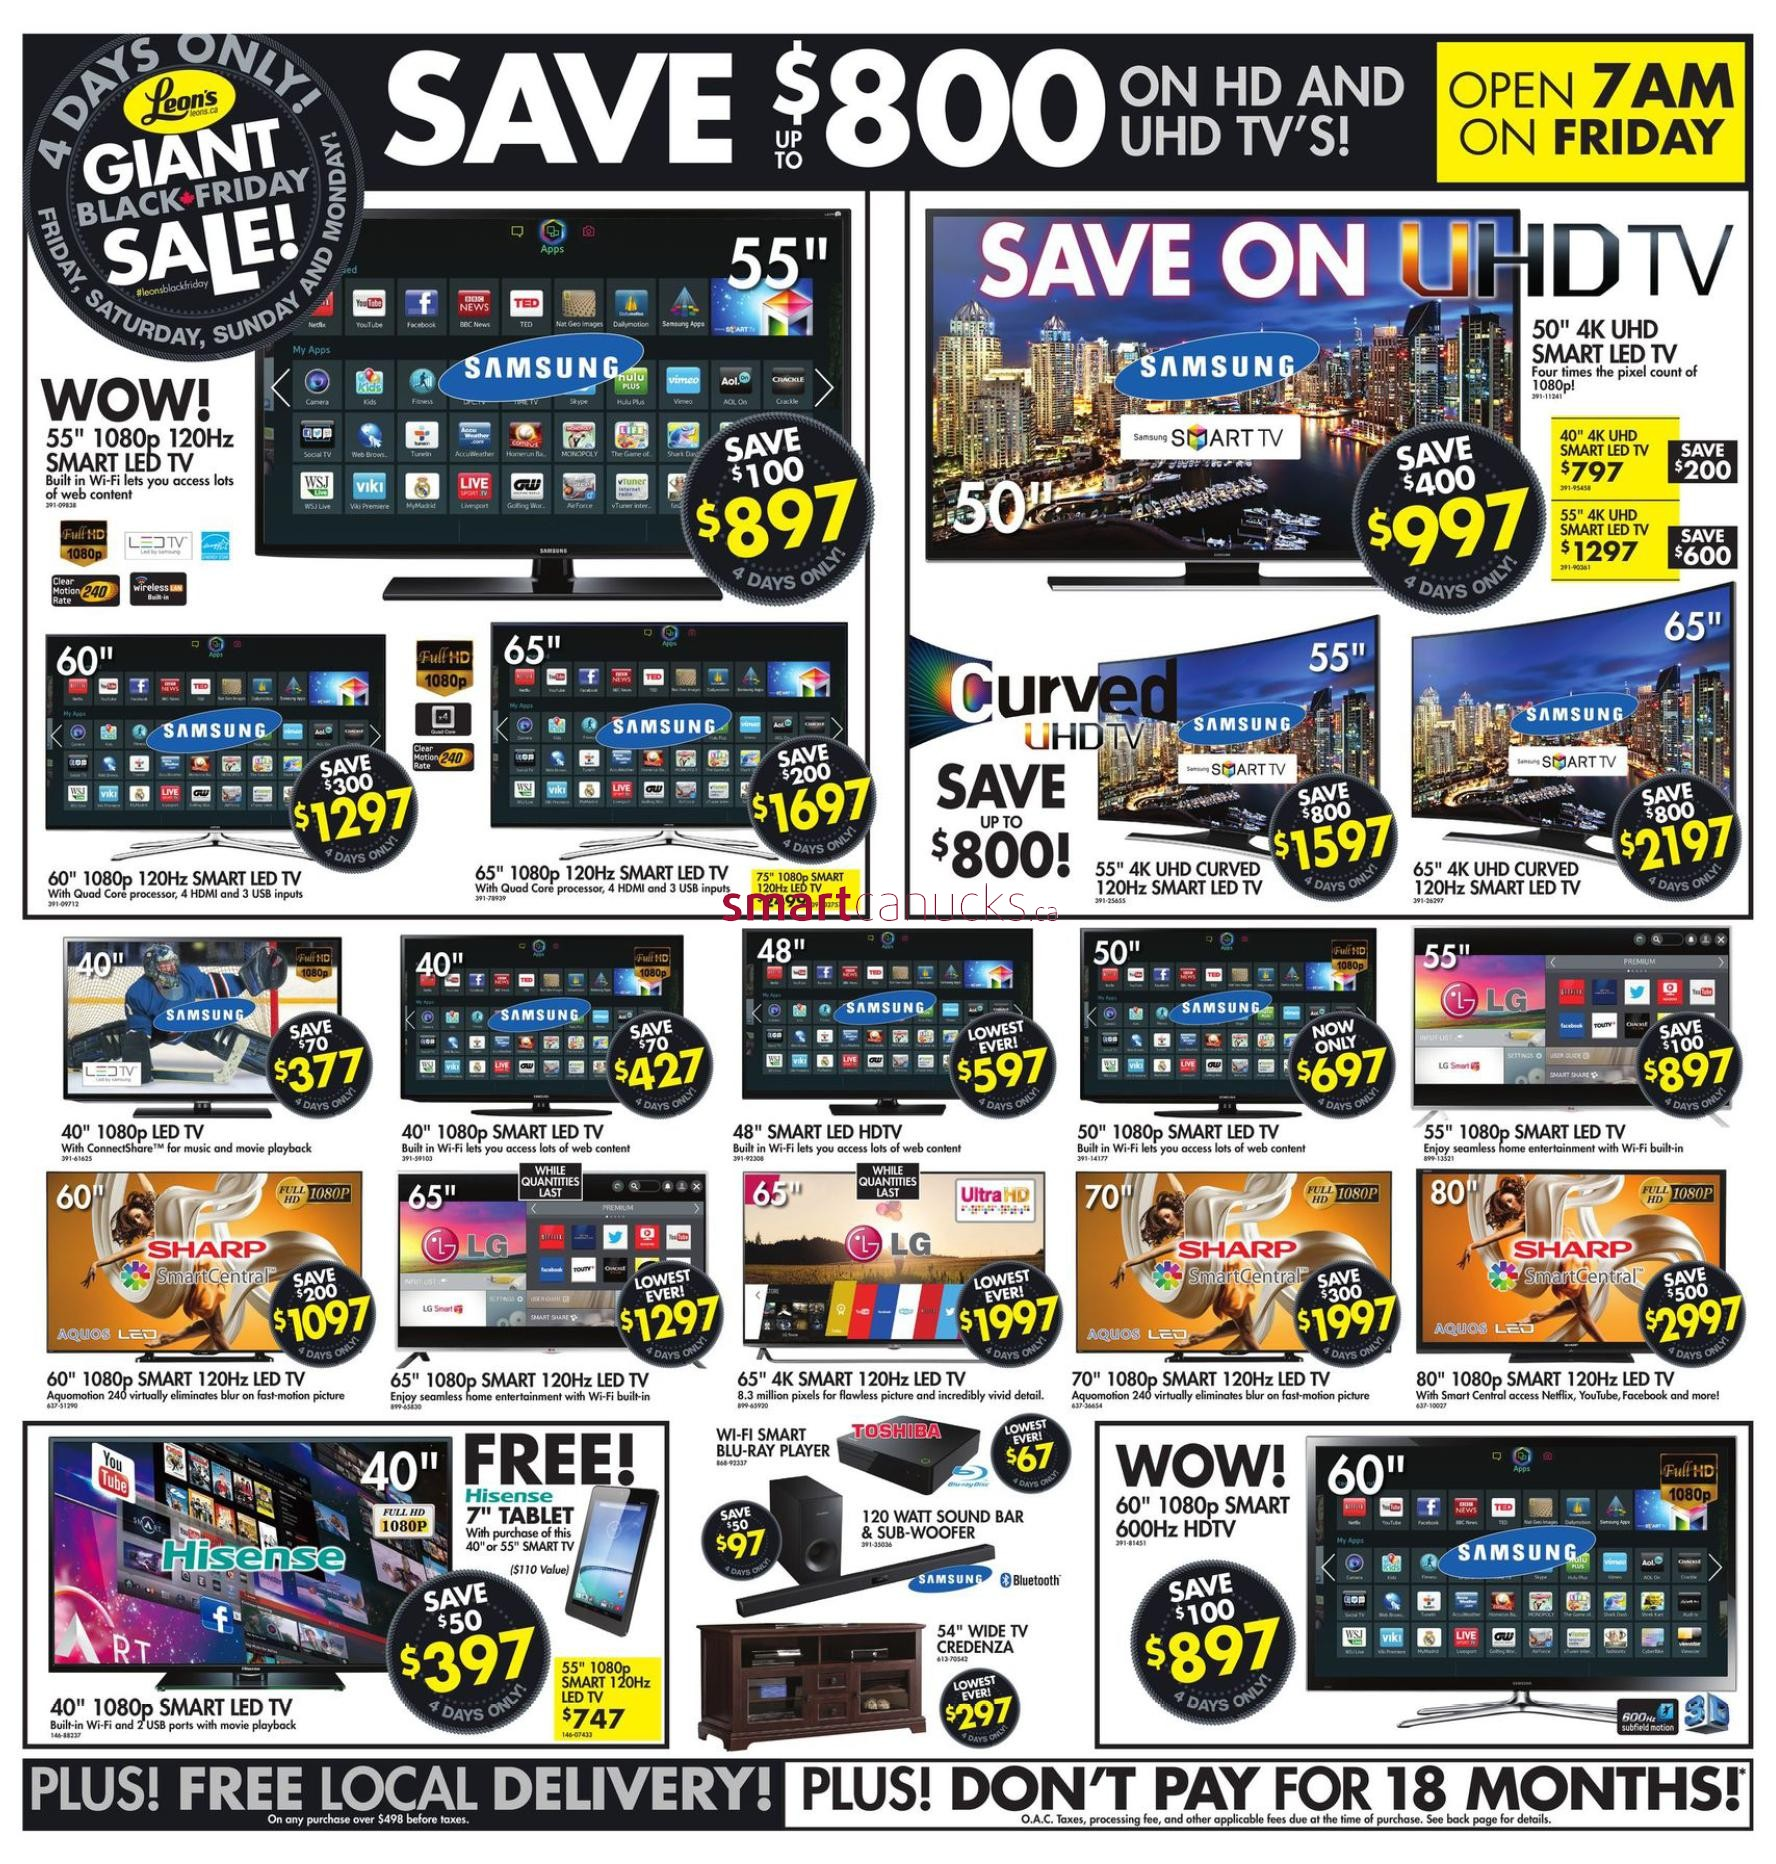 Leon's Black Friday Canada 2014 Flyer, Sales And Deals